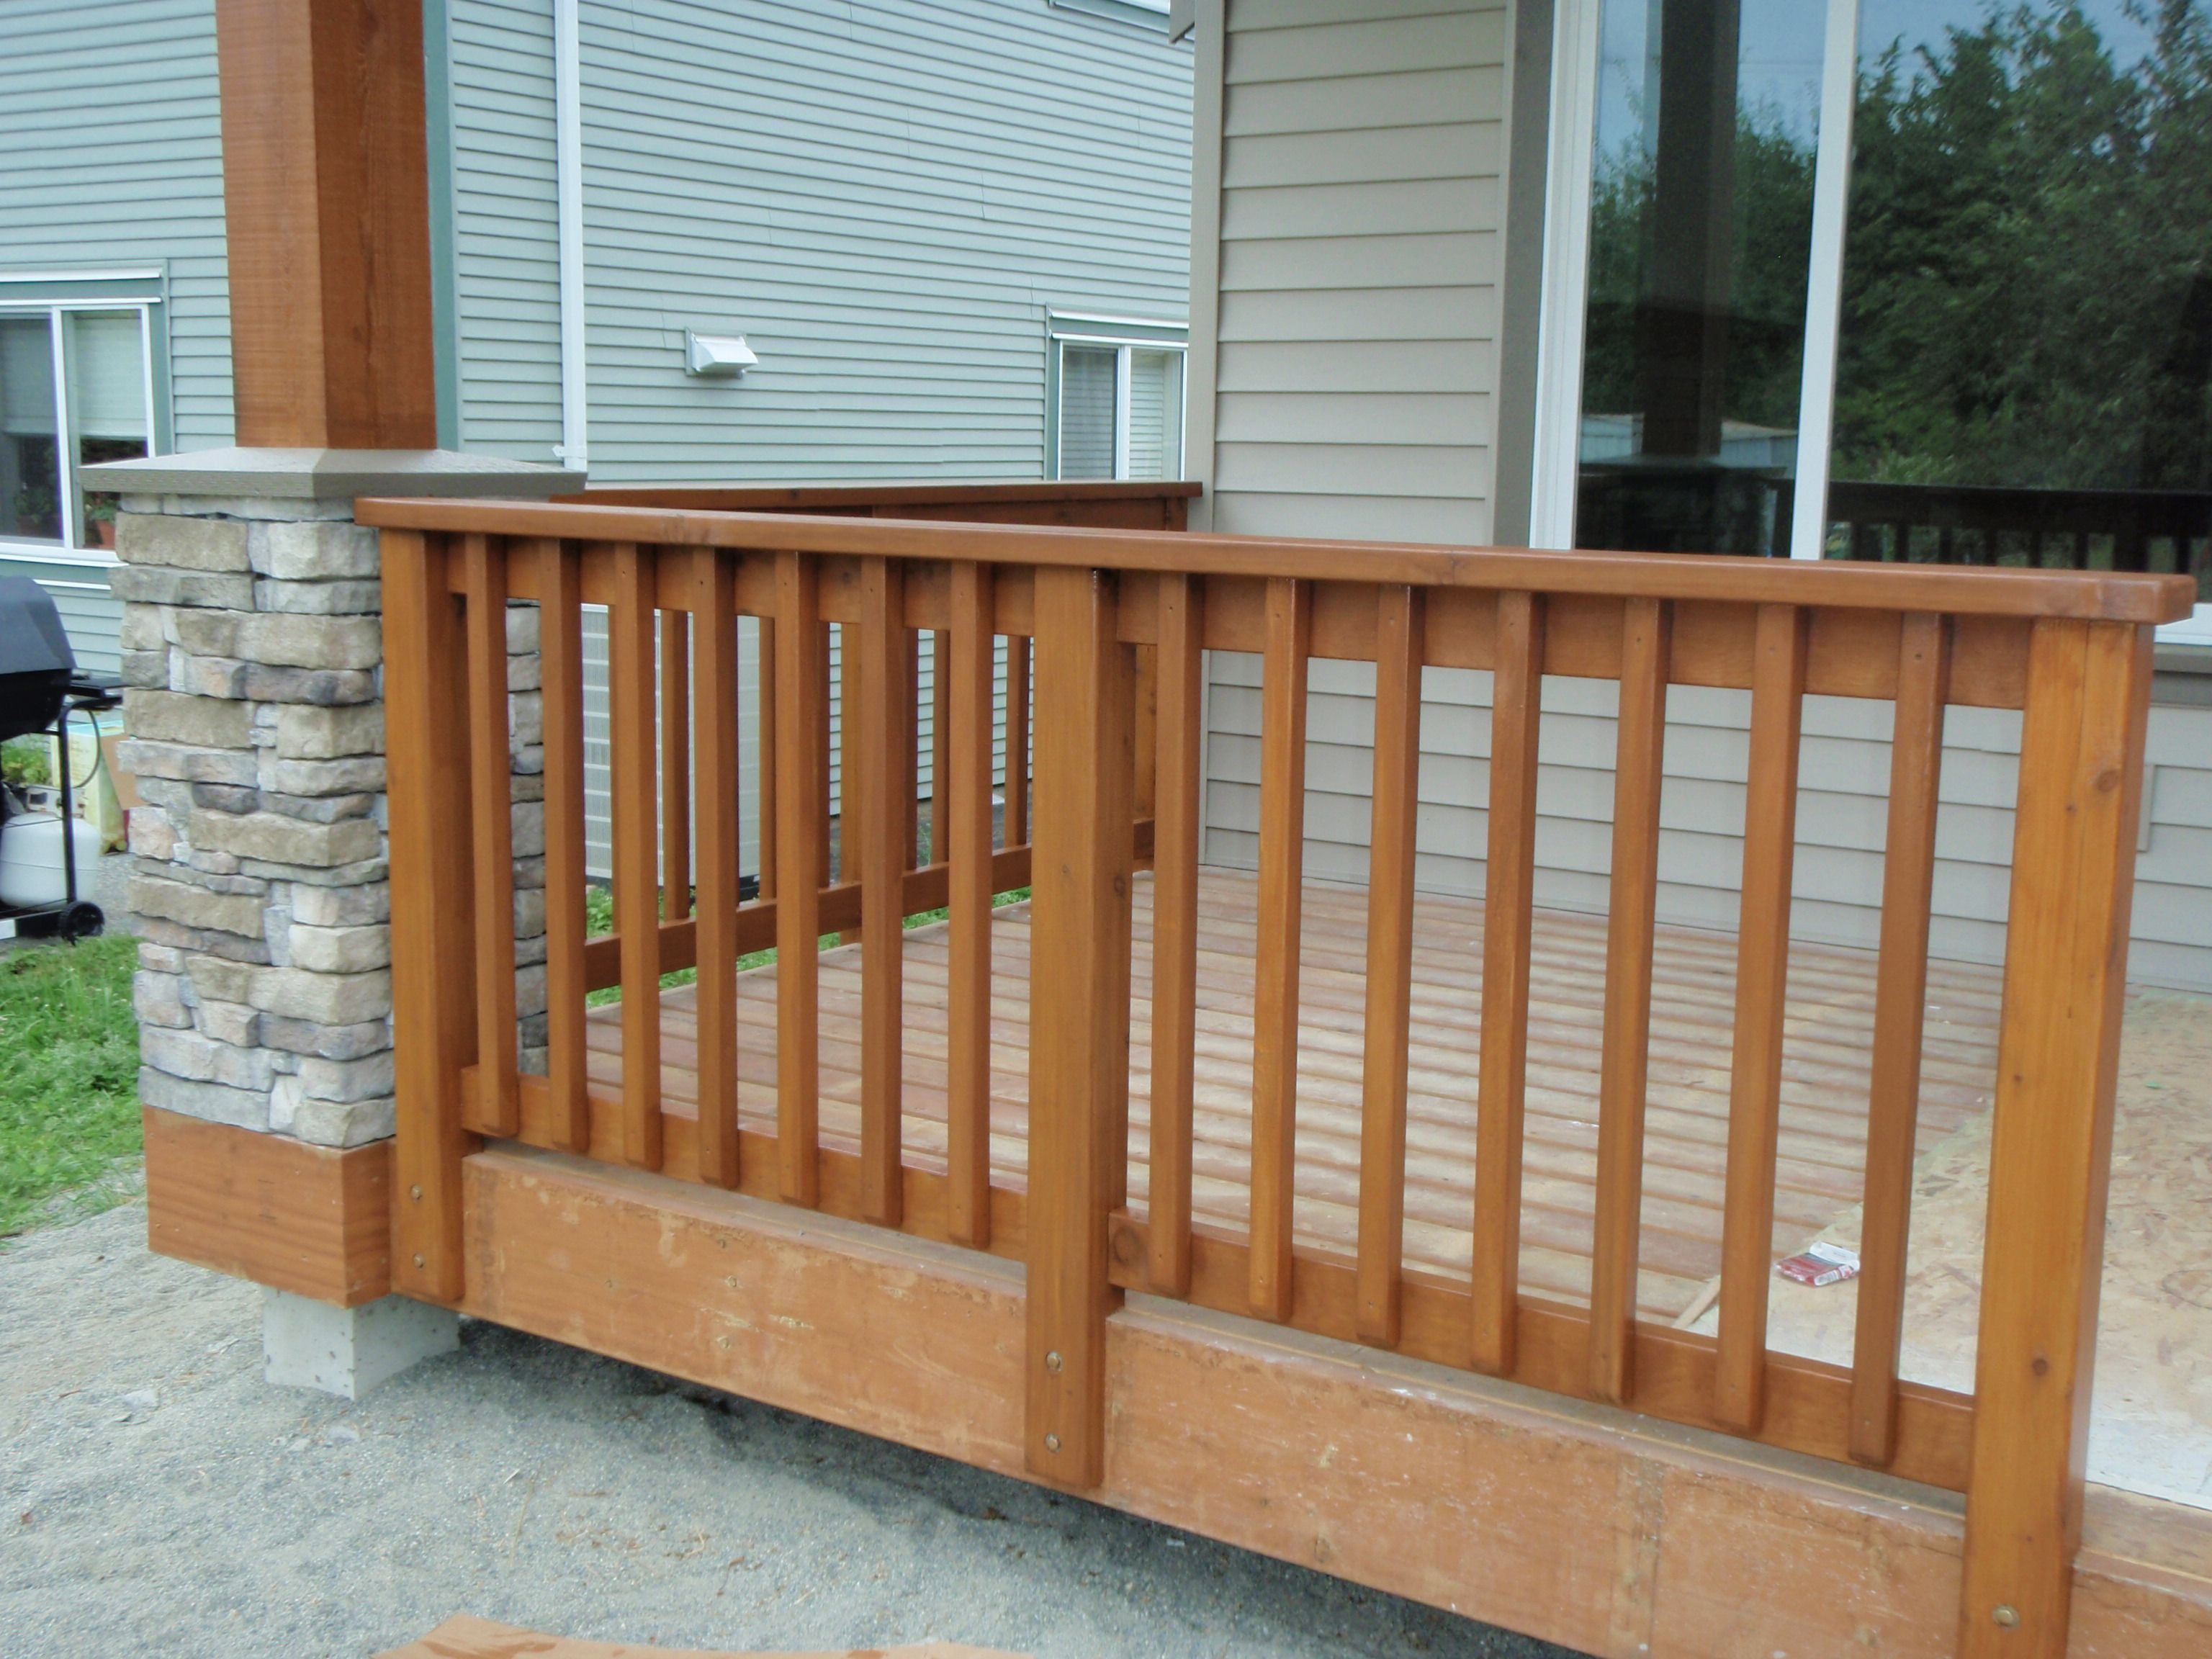 Best Wood Deck Railings Yahoo Image Search Results Patio 400 x 300